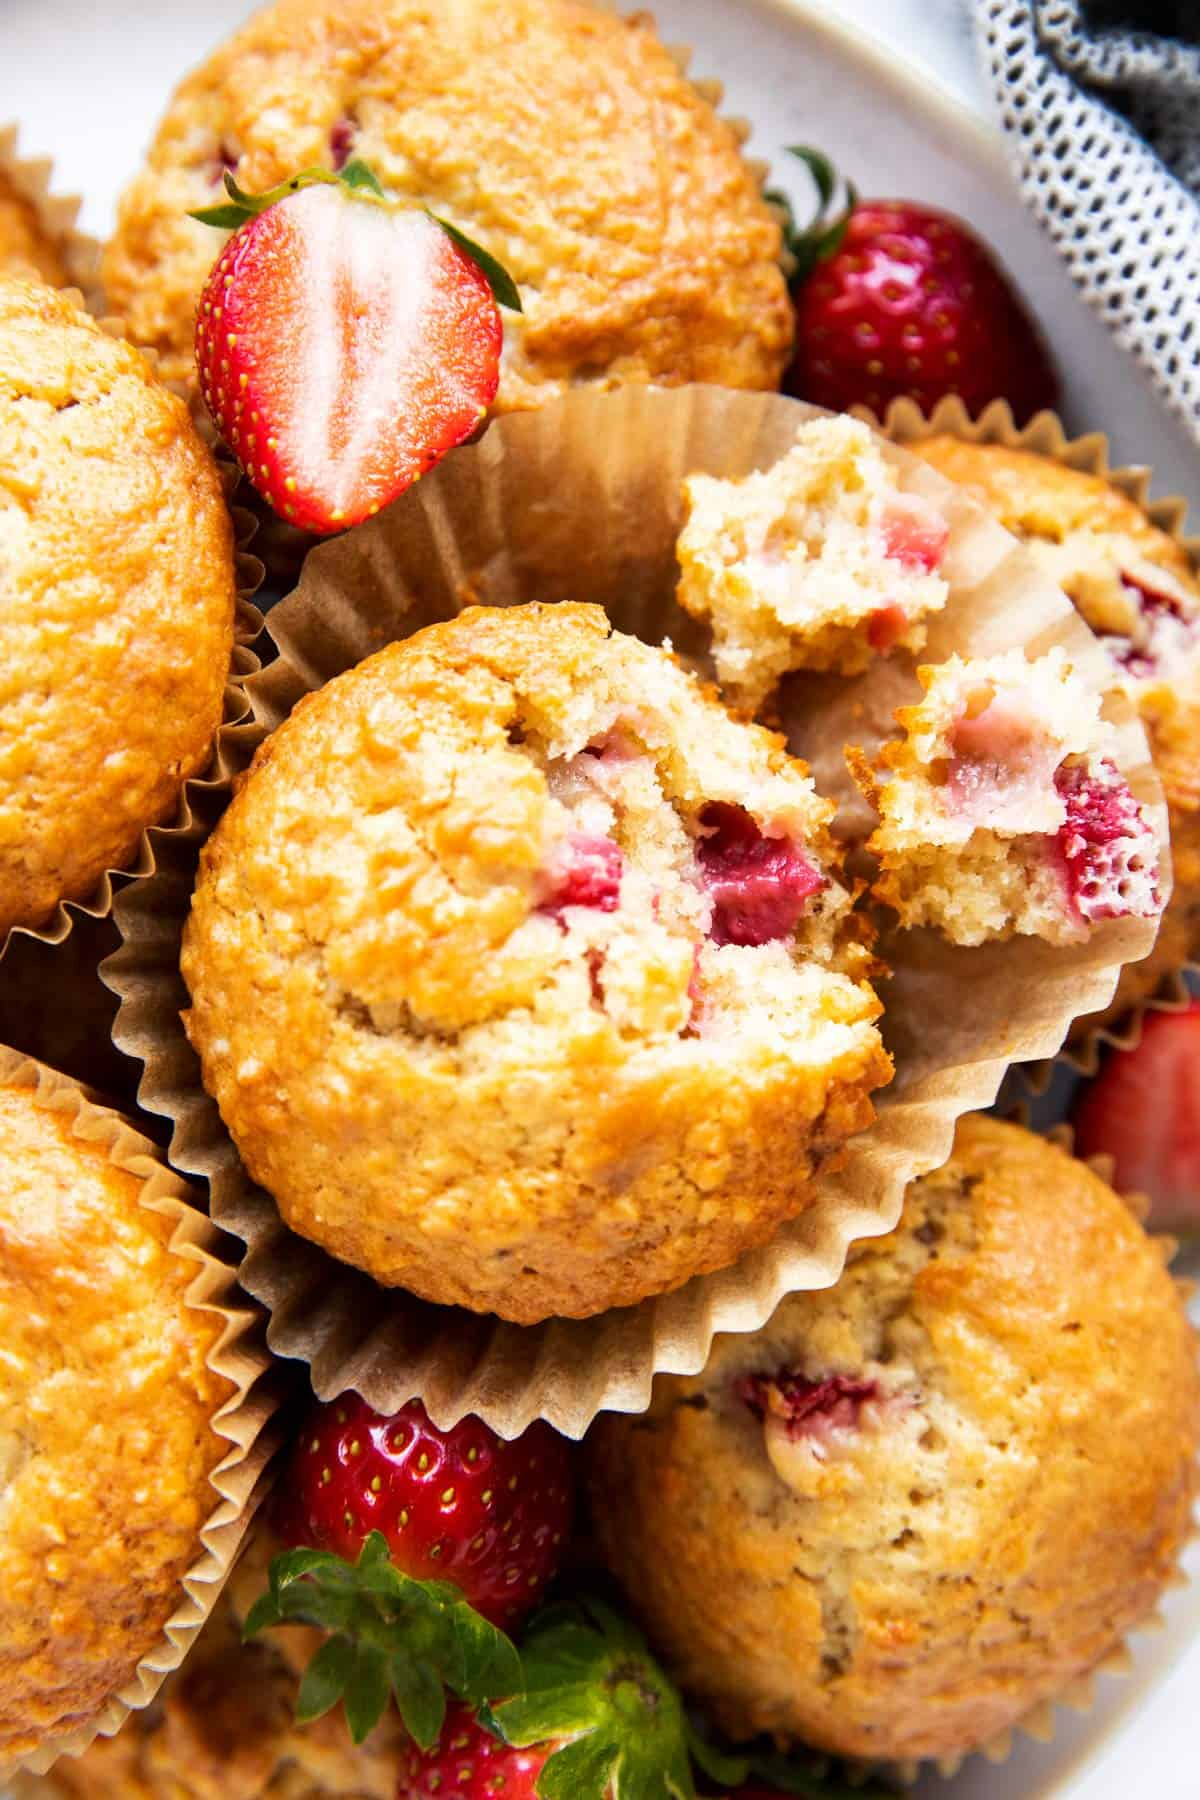 close up photo of a pile of strawberry muffins, one broken apart